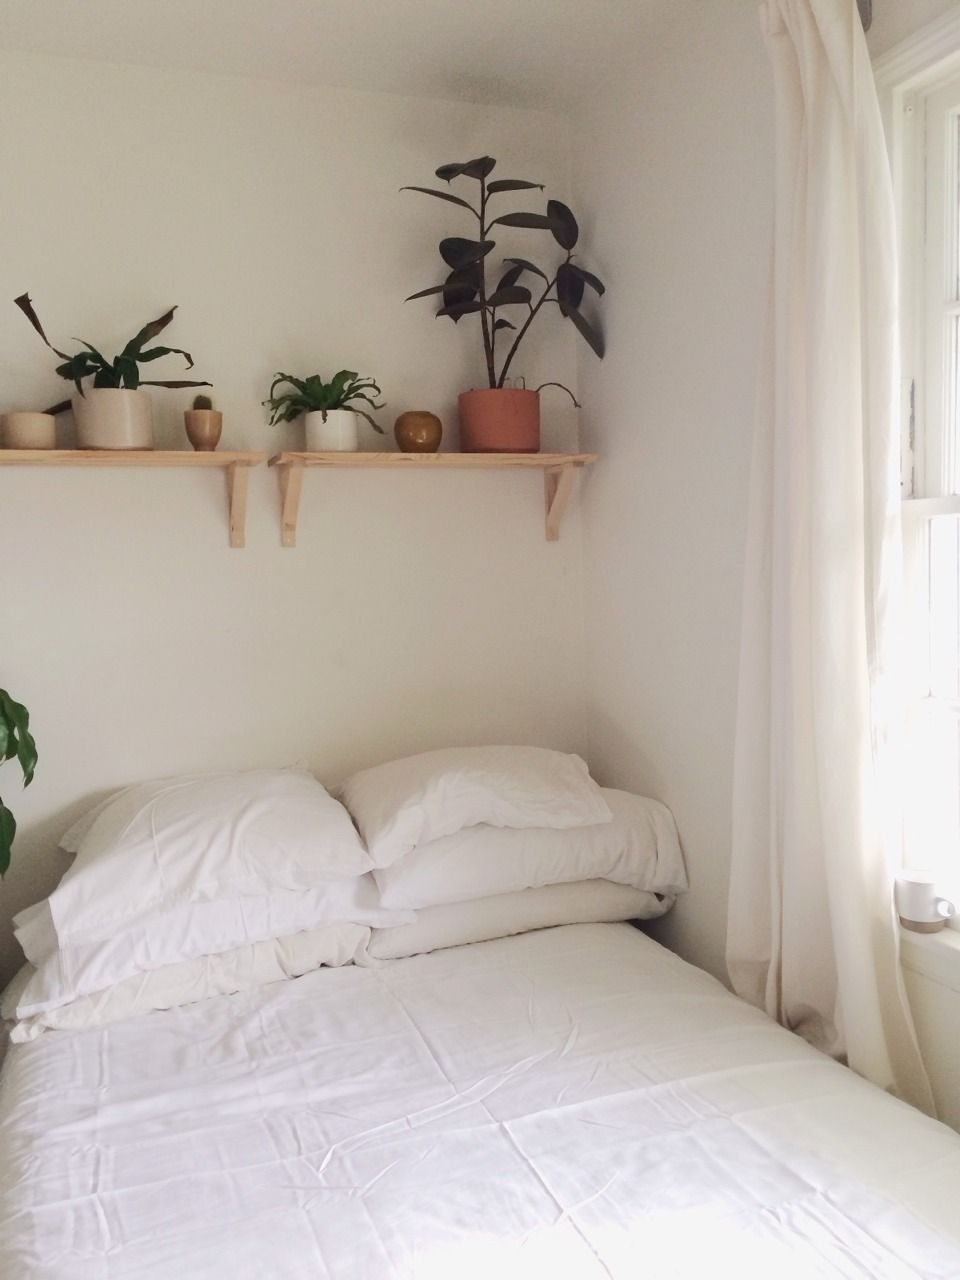 Shelves With Plants Bungalow Home Decor Tumblr Rooms Bedroom